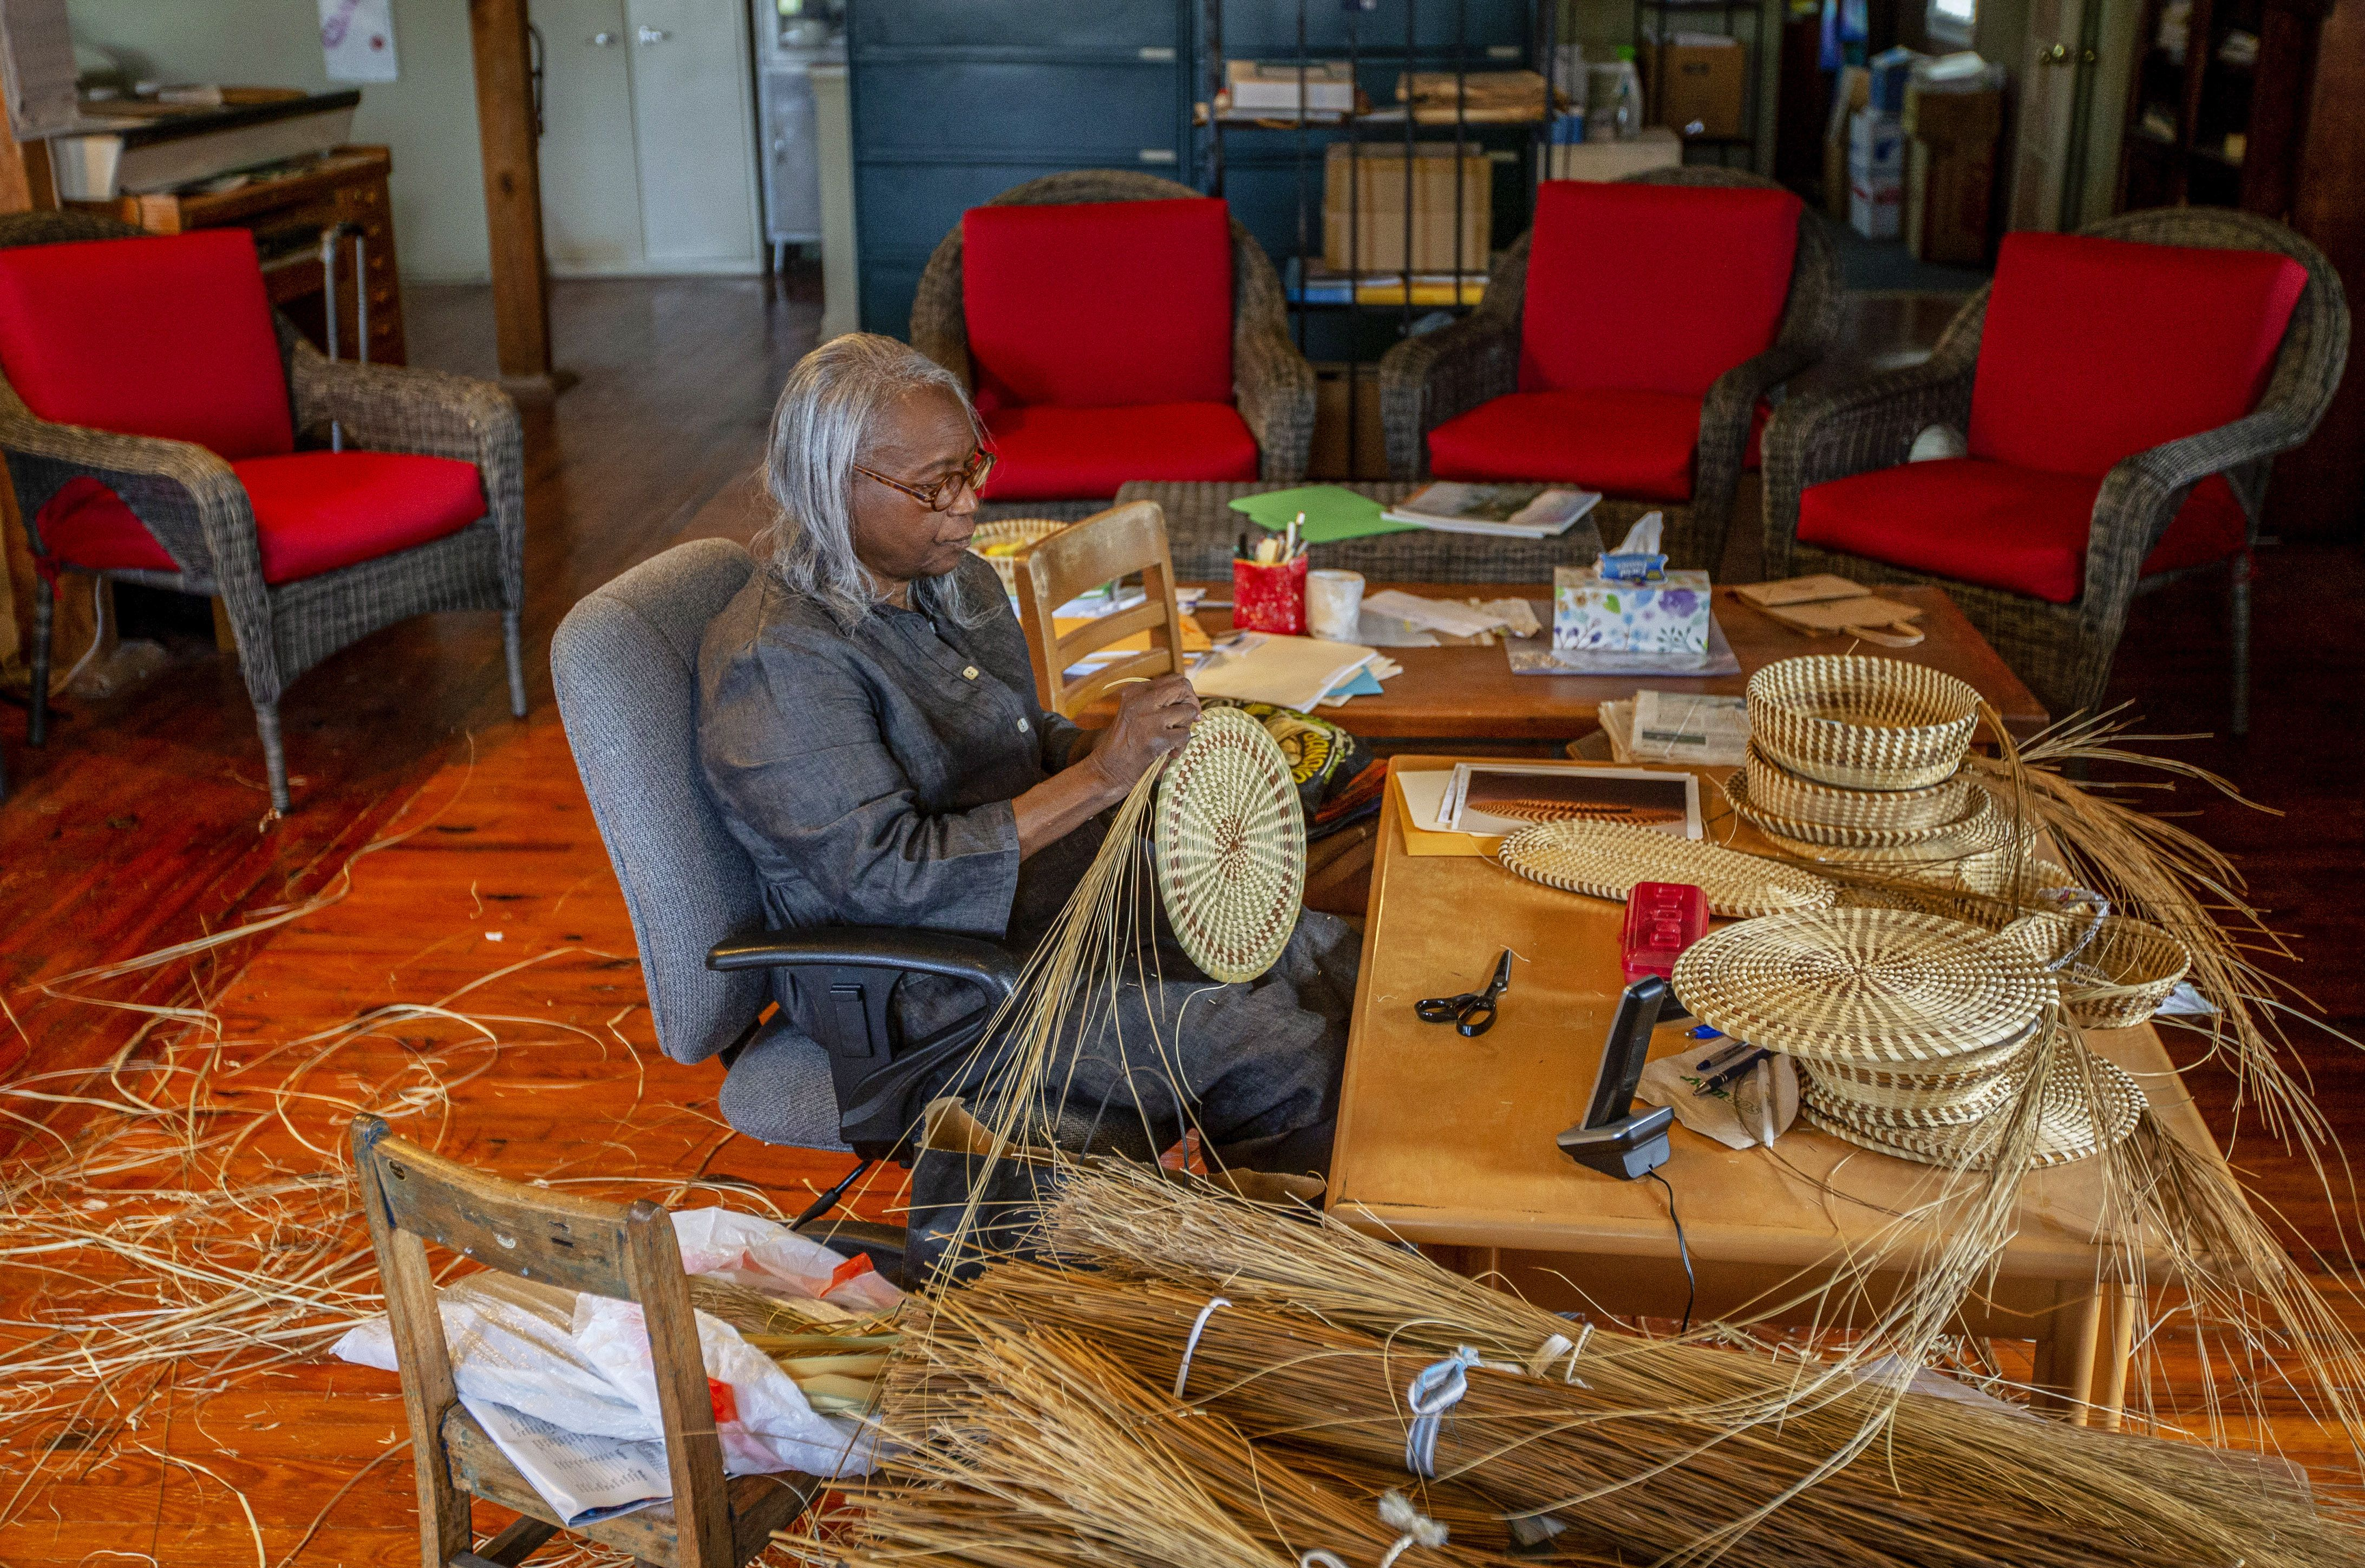 This Artist Is Continuing a Rich Legacy of Basket Weaving